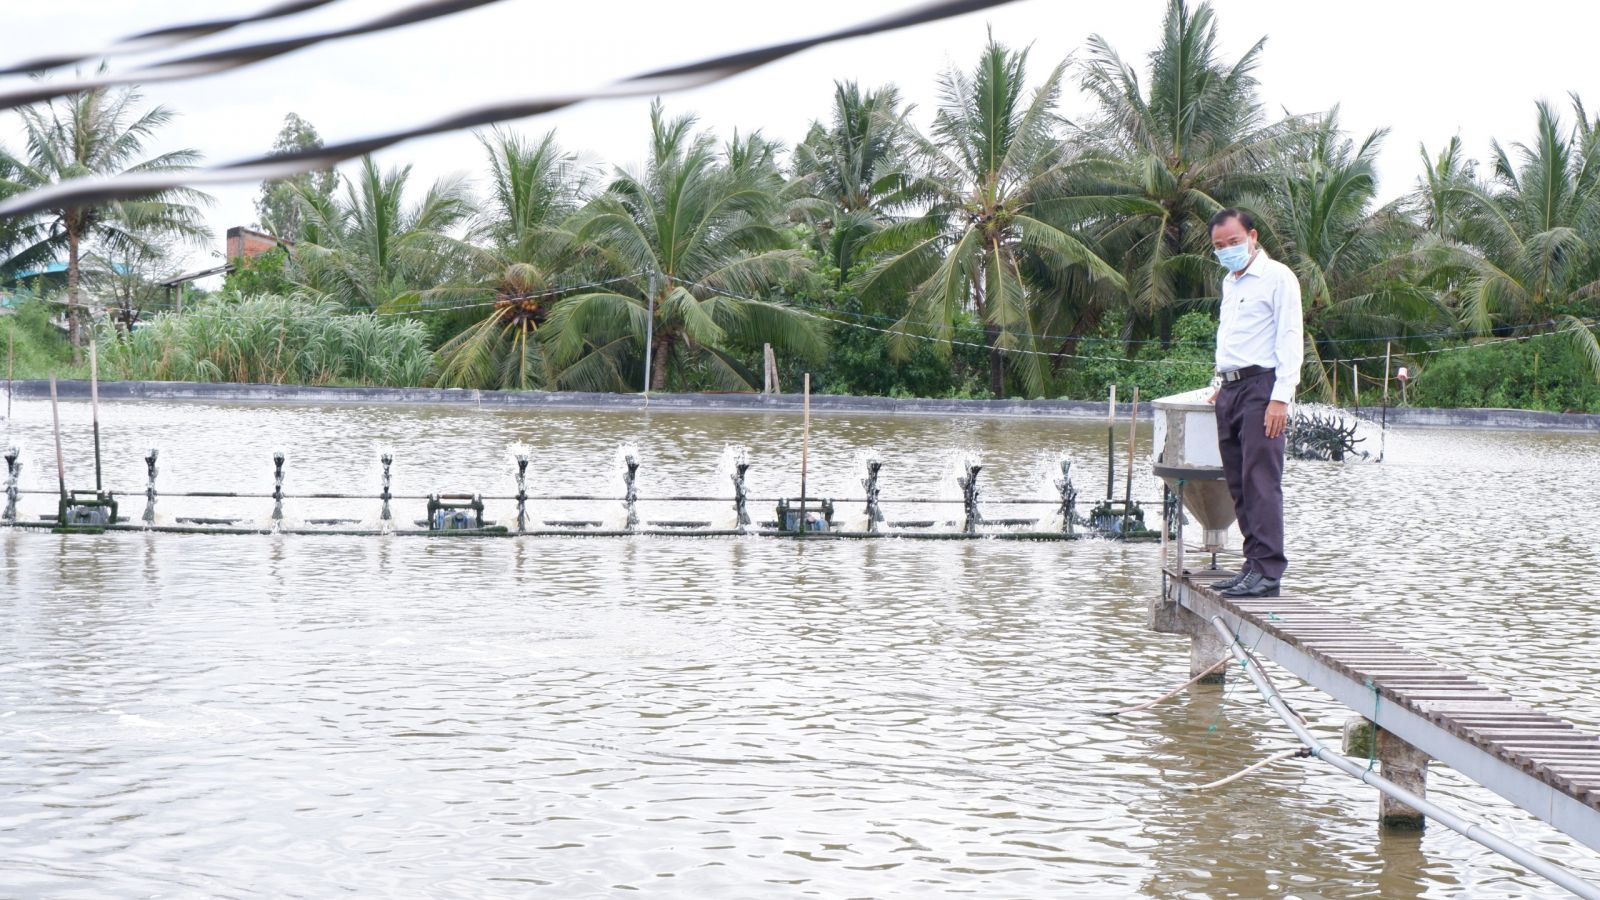 Shrimp-feeding farmers face many difficulties due to the temporary suspension of consumption at wholesale markets in Ho Chi Minh City